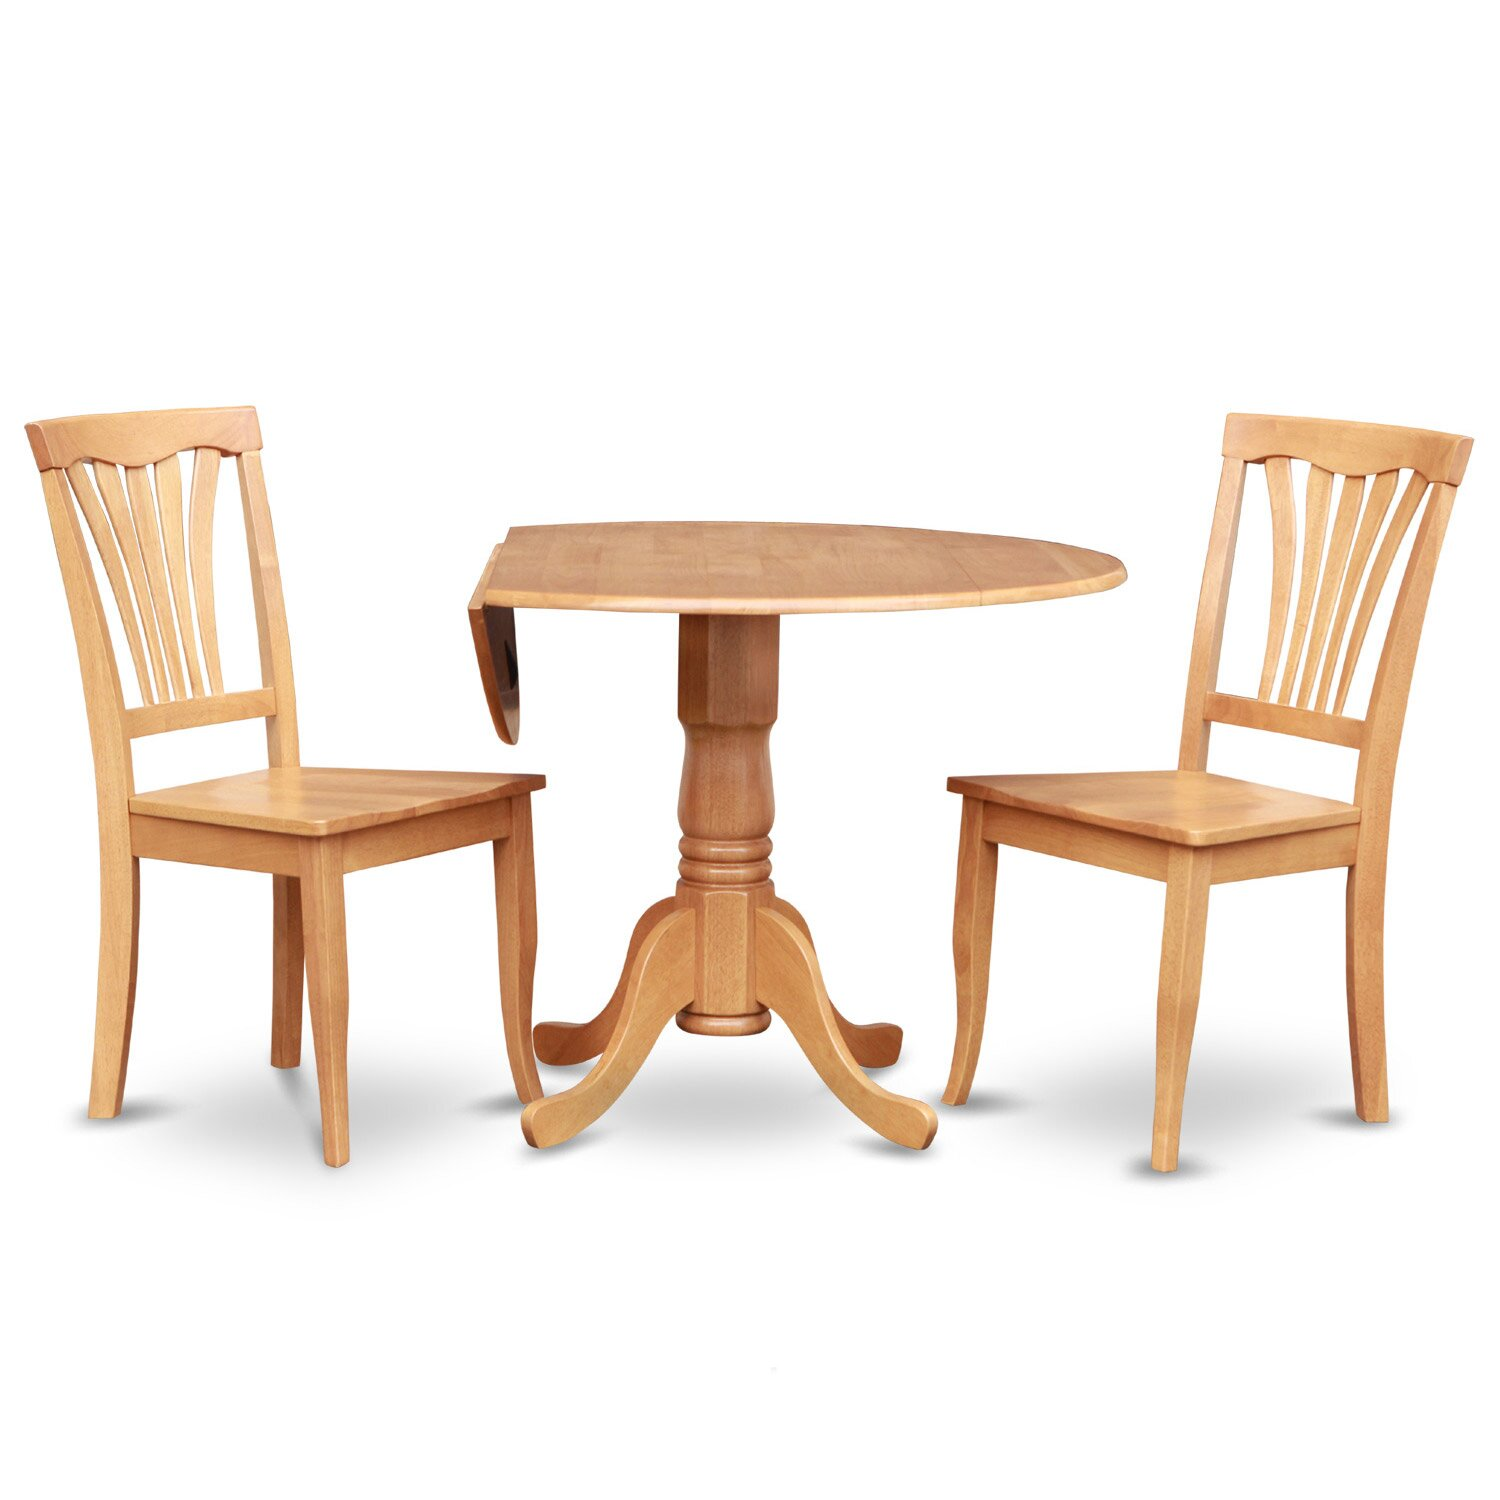 Wooden importers dublin 3 piece dining set reviews wayfair for Small wood dining table and chairs